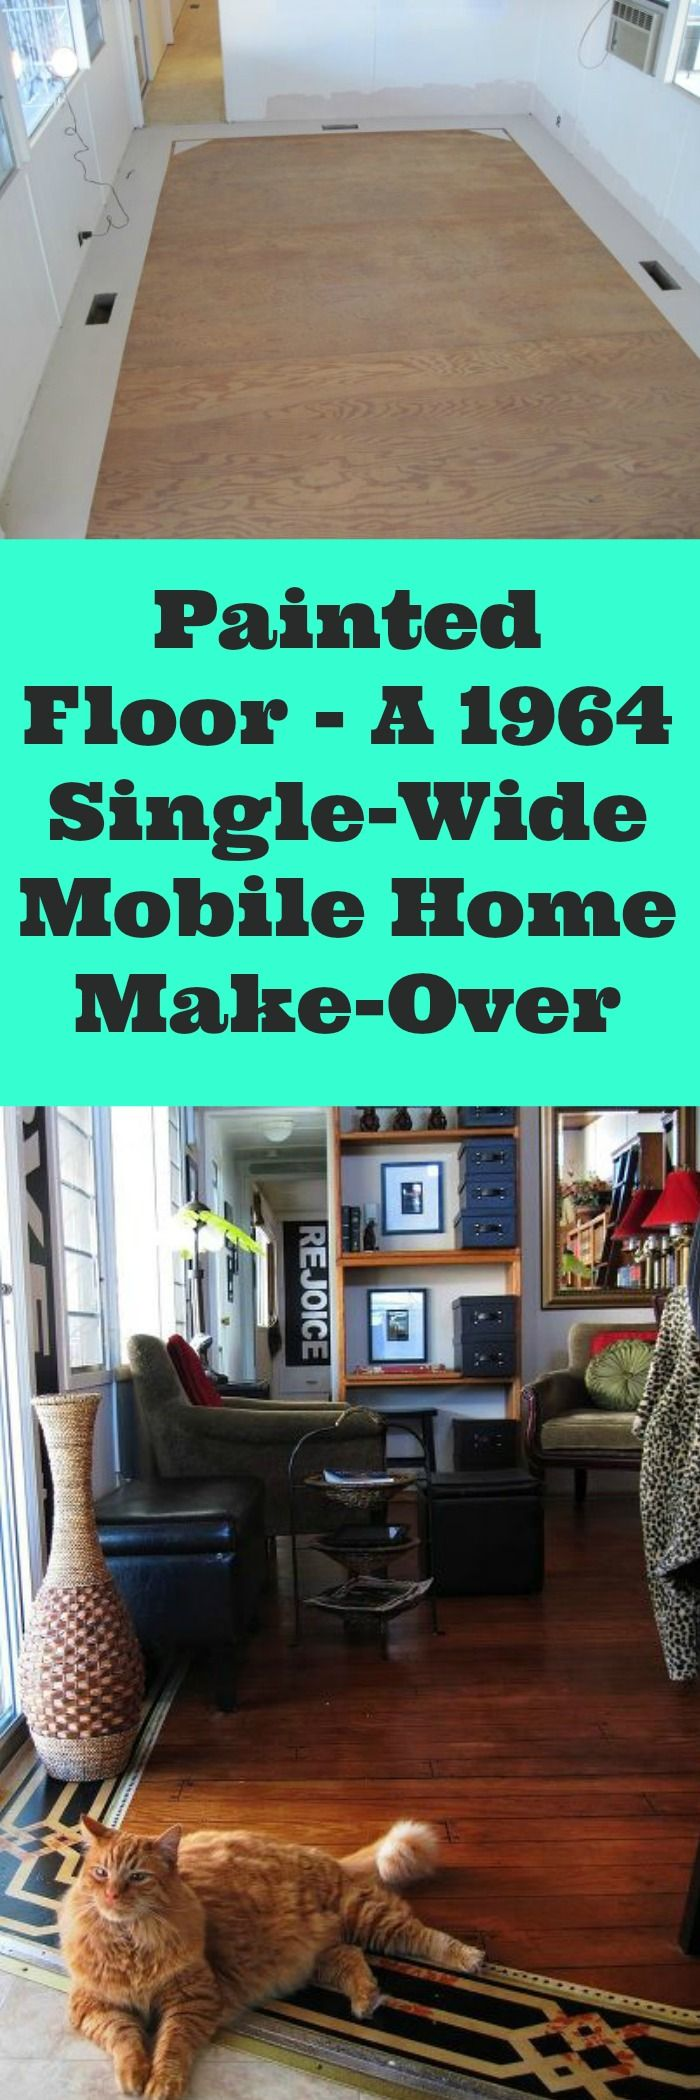 62 best Single-wide mobile home renos images on Pinterest | Mobile ...